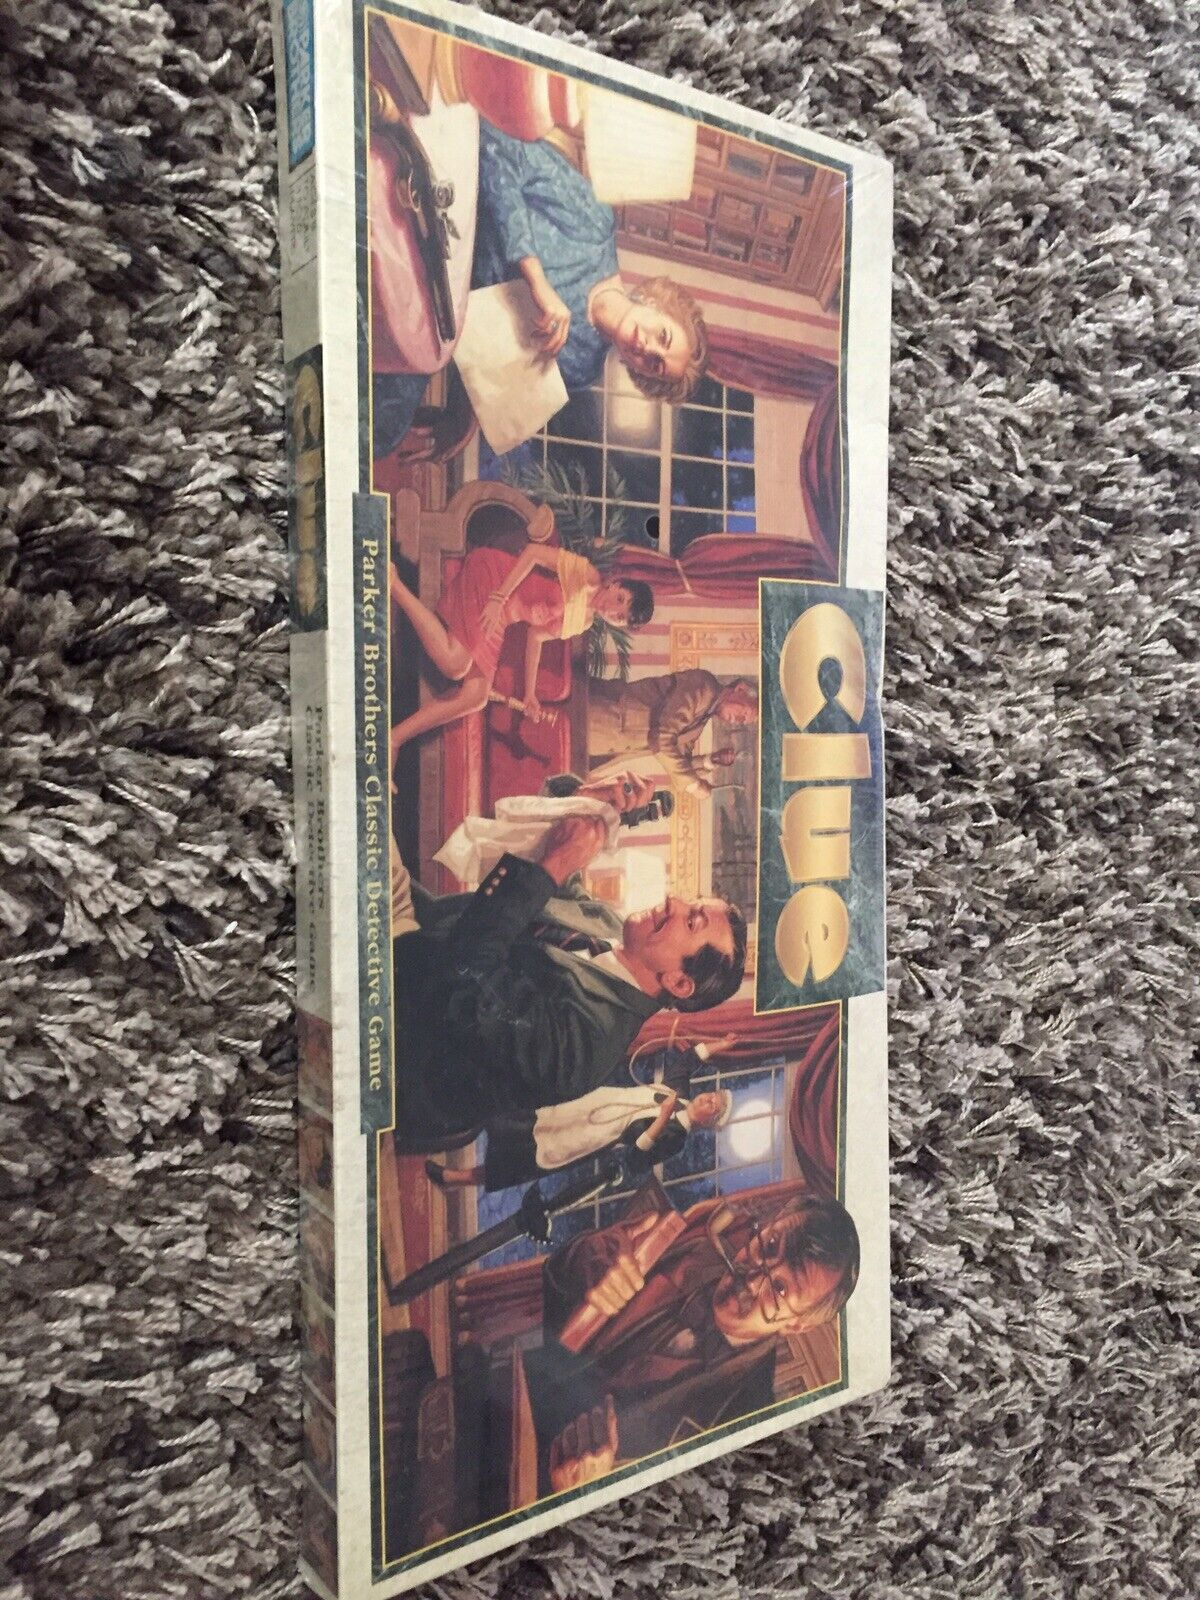 Vtg Clue Board Game Parker Bredhers 1992 Classic Detective Game Complete New